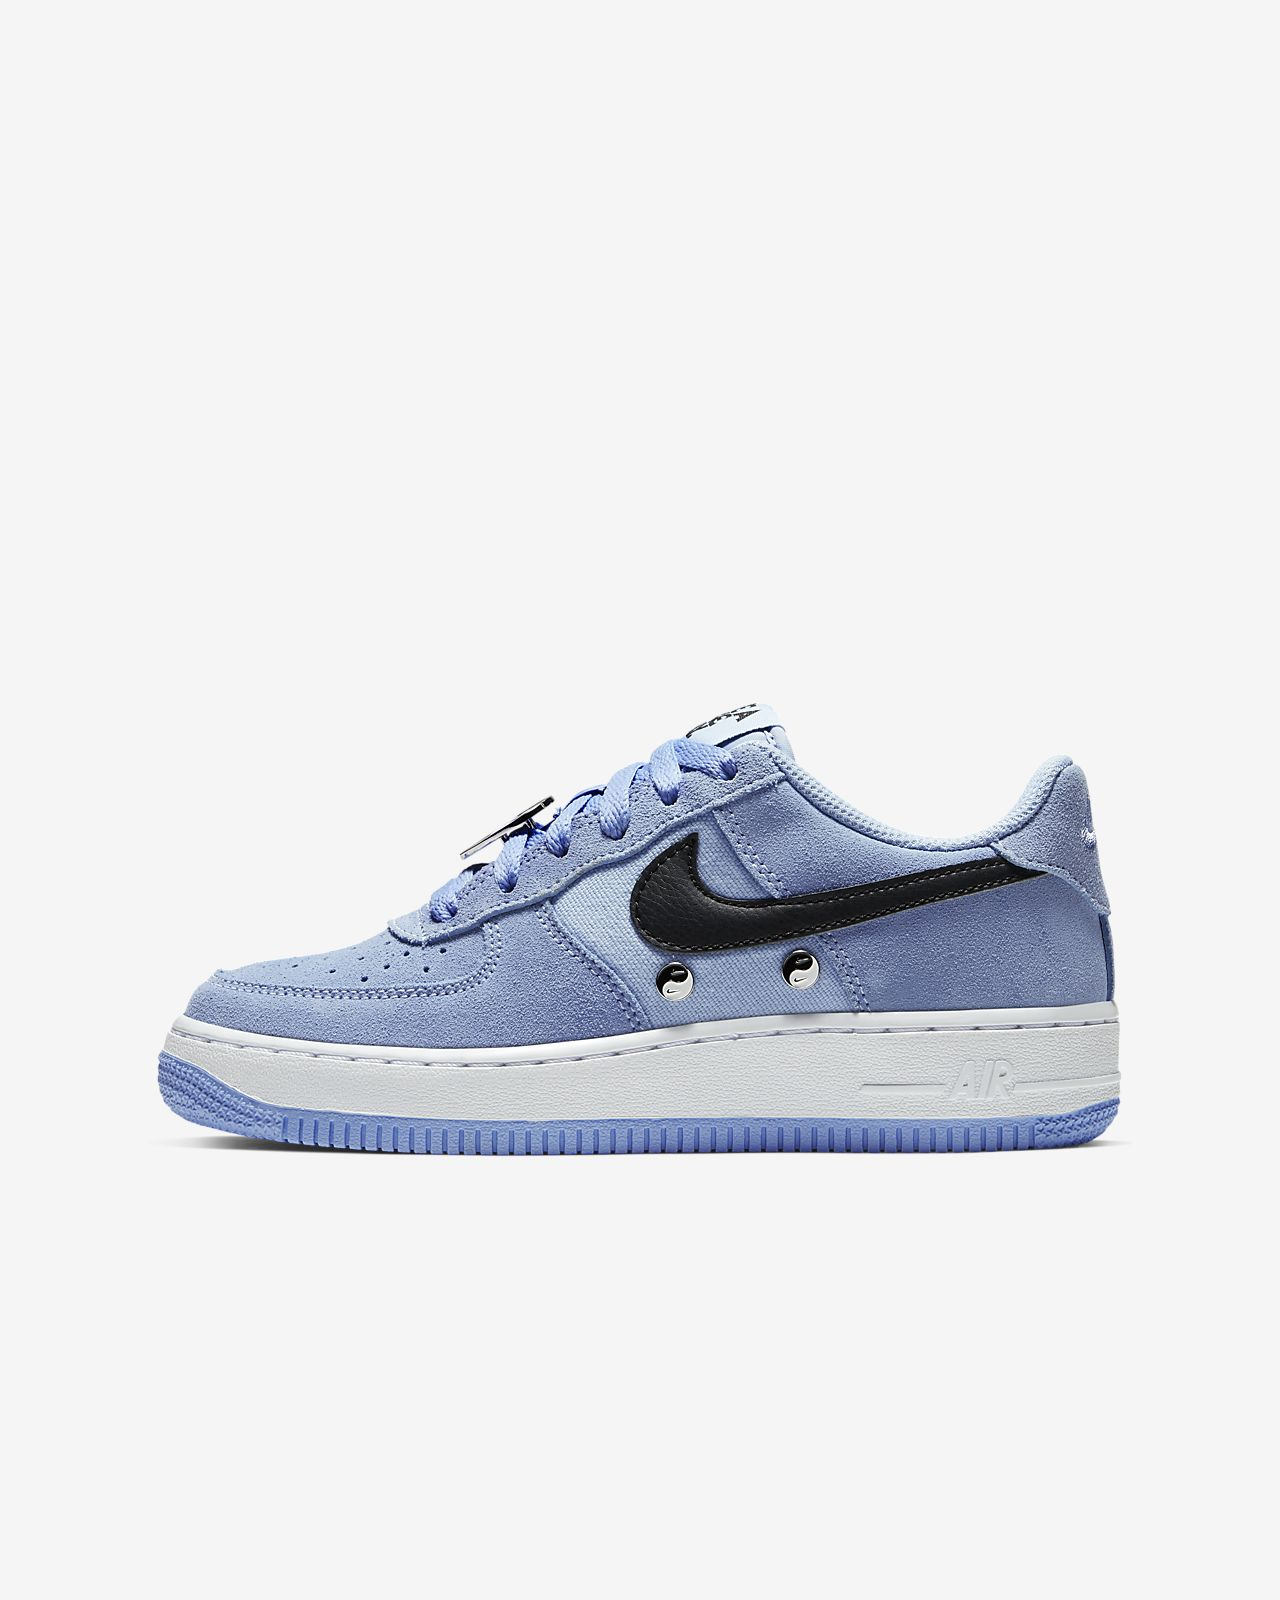 42f1eecfda5 Nike Air Force 1 LV8 Kinderschoen. Nike.com BE